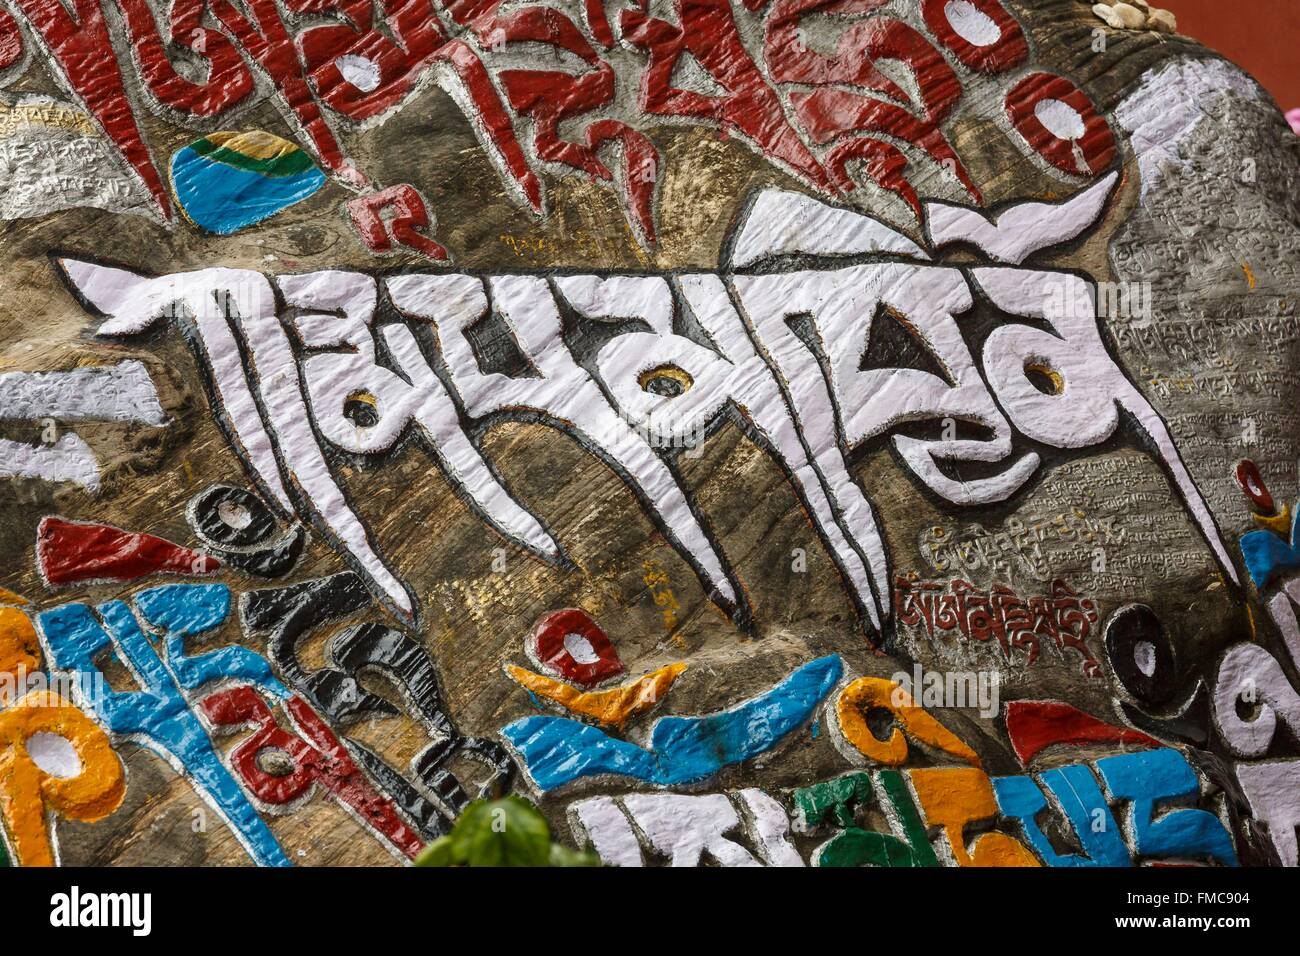 Nepal, Gandaki zone, Pokhara, mani rock, buddhist carving - Stock Image